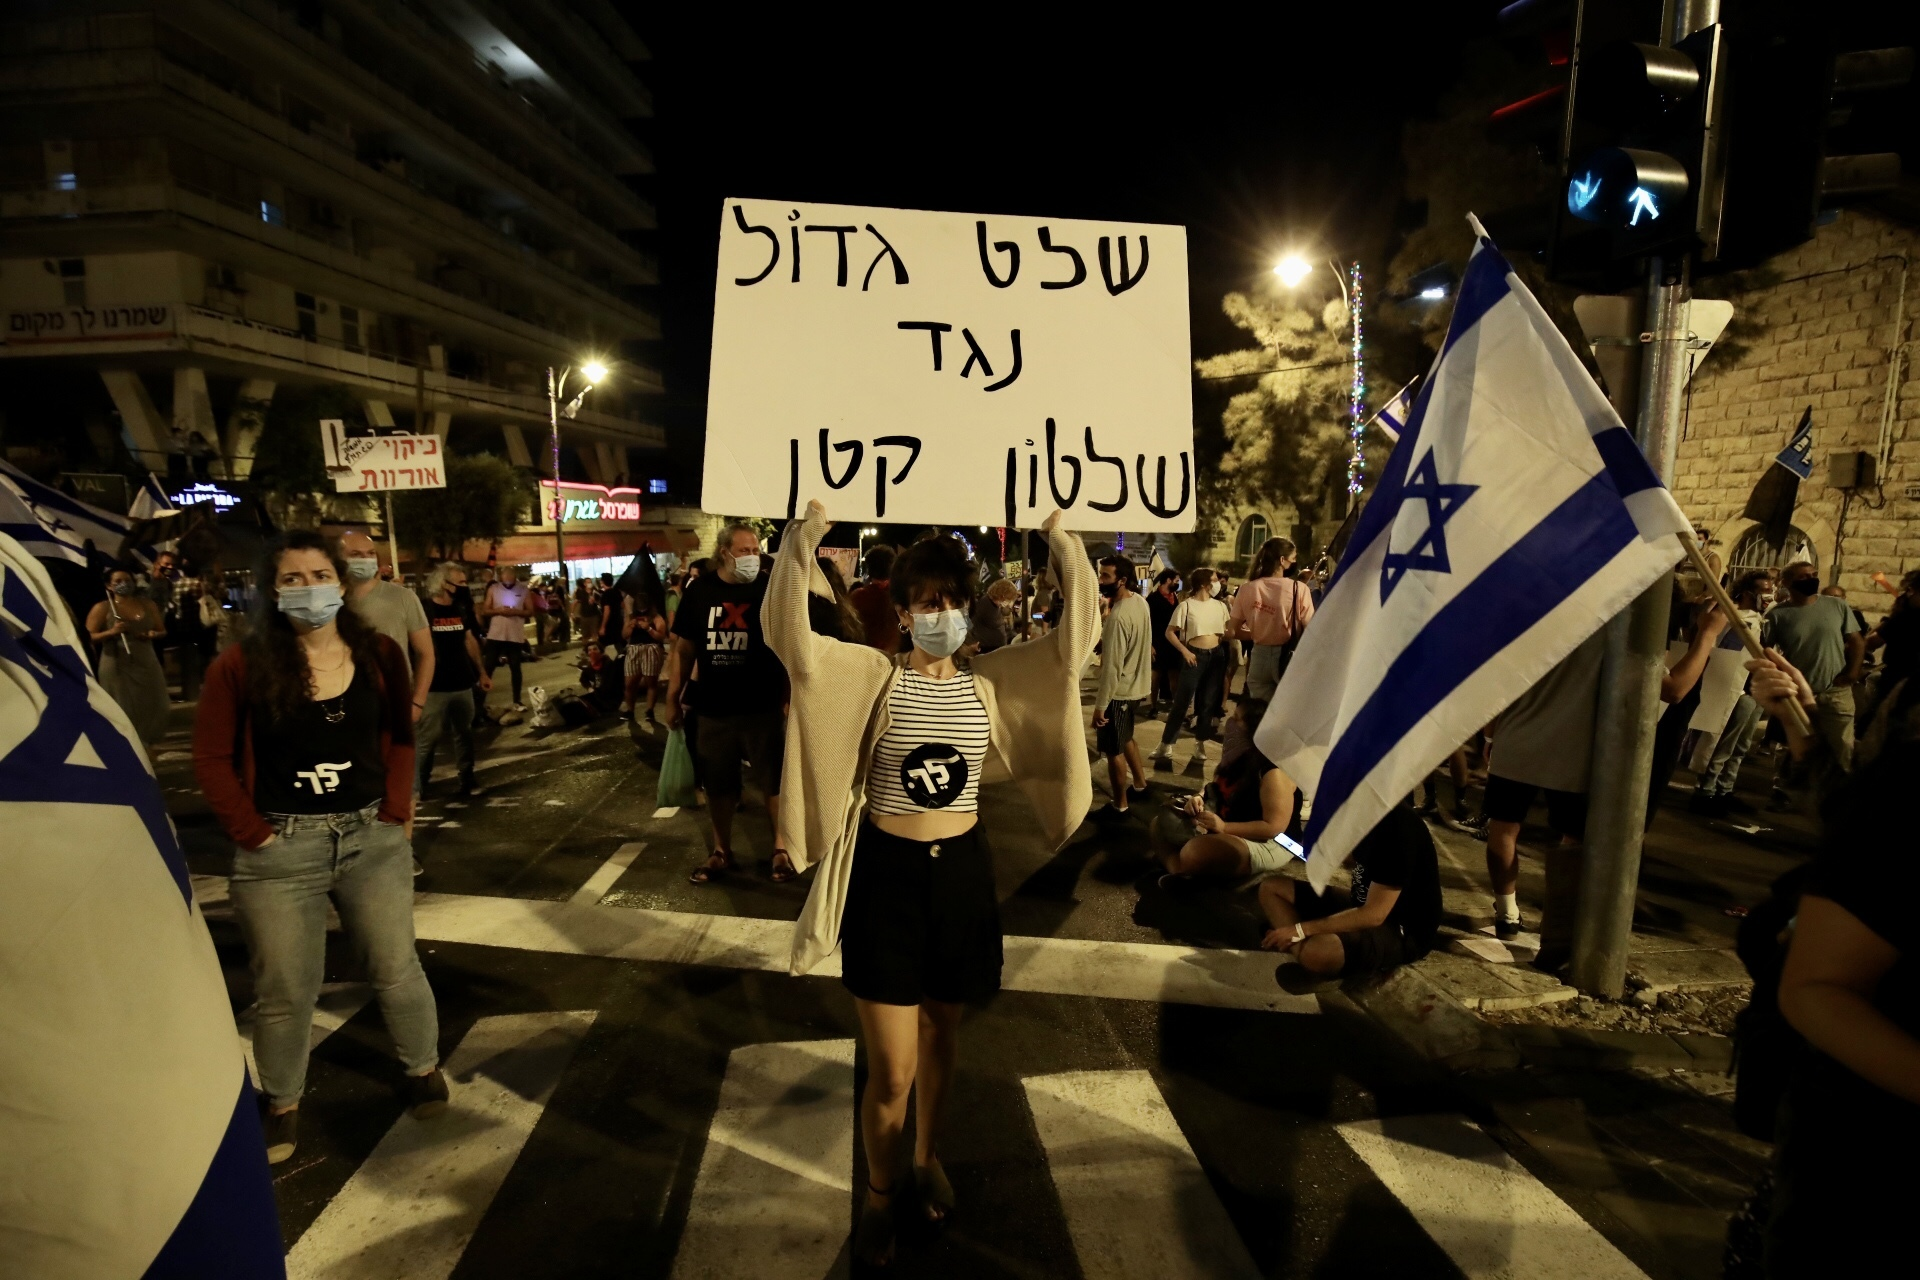 People protest against the Israeli Prime Minister Benjamin Netanyahu, demanding his resignation over corruption cases and his failure to combat the new type of coronavirus (Covid-19) pandemic in West Jerusalem on Sept. 26, 2020.